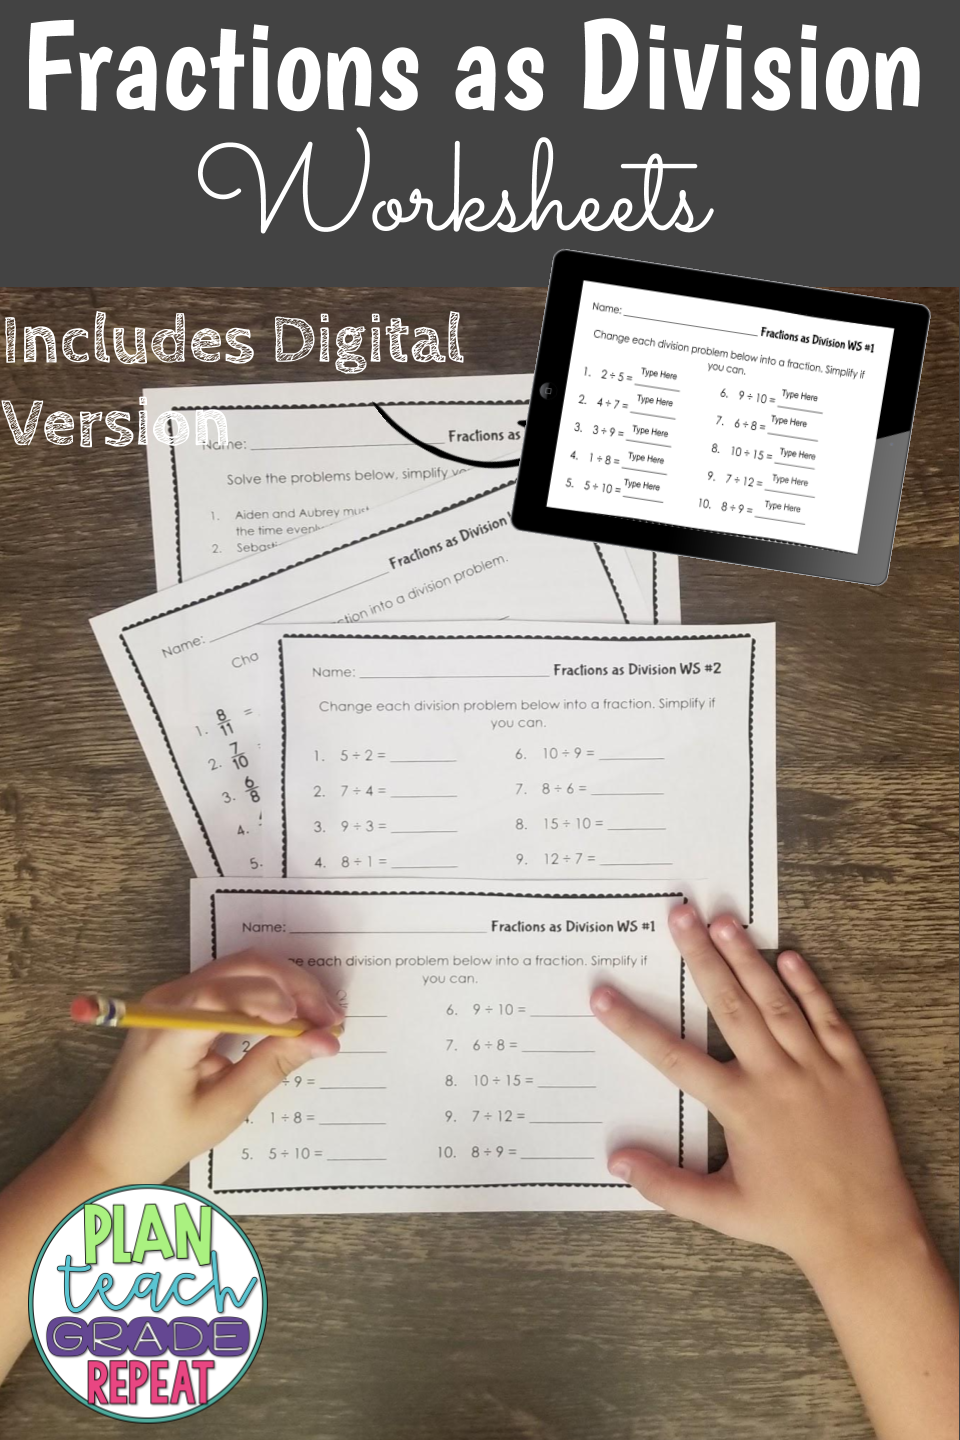 Fractions as Division Worksheets - 5.NF.3   5th grade math [ 1440 x 960 Pixel ]